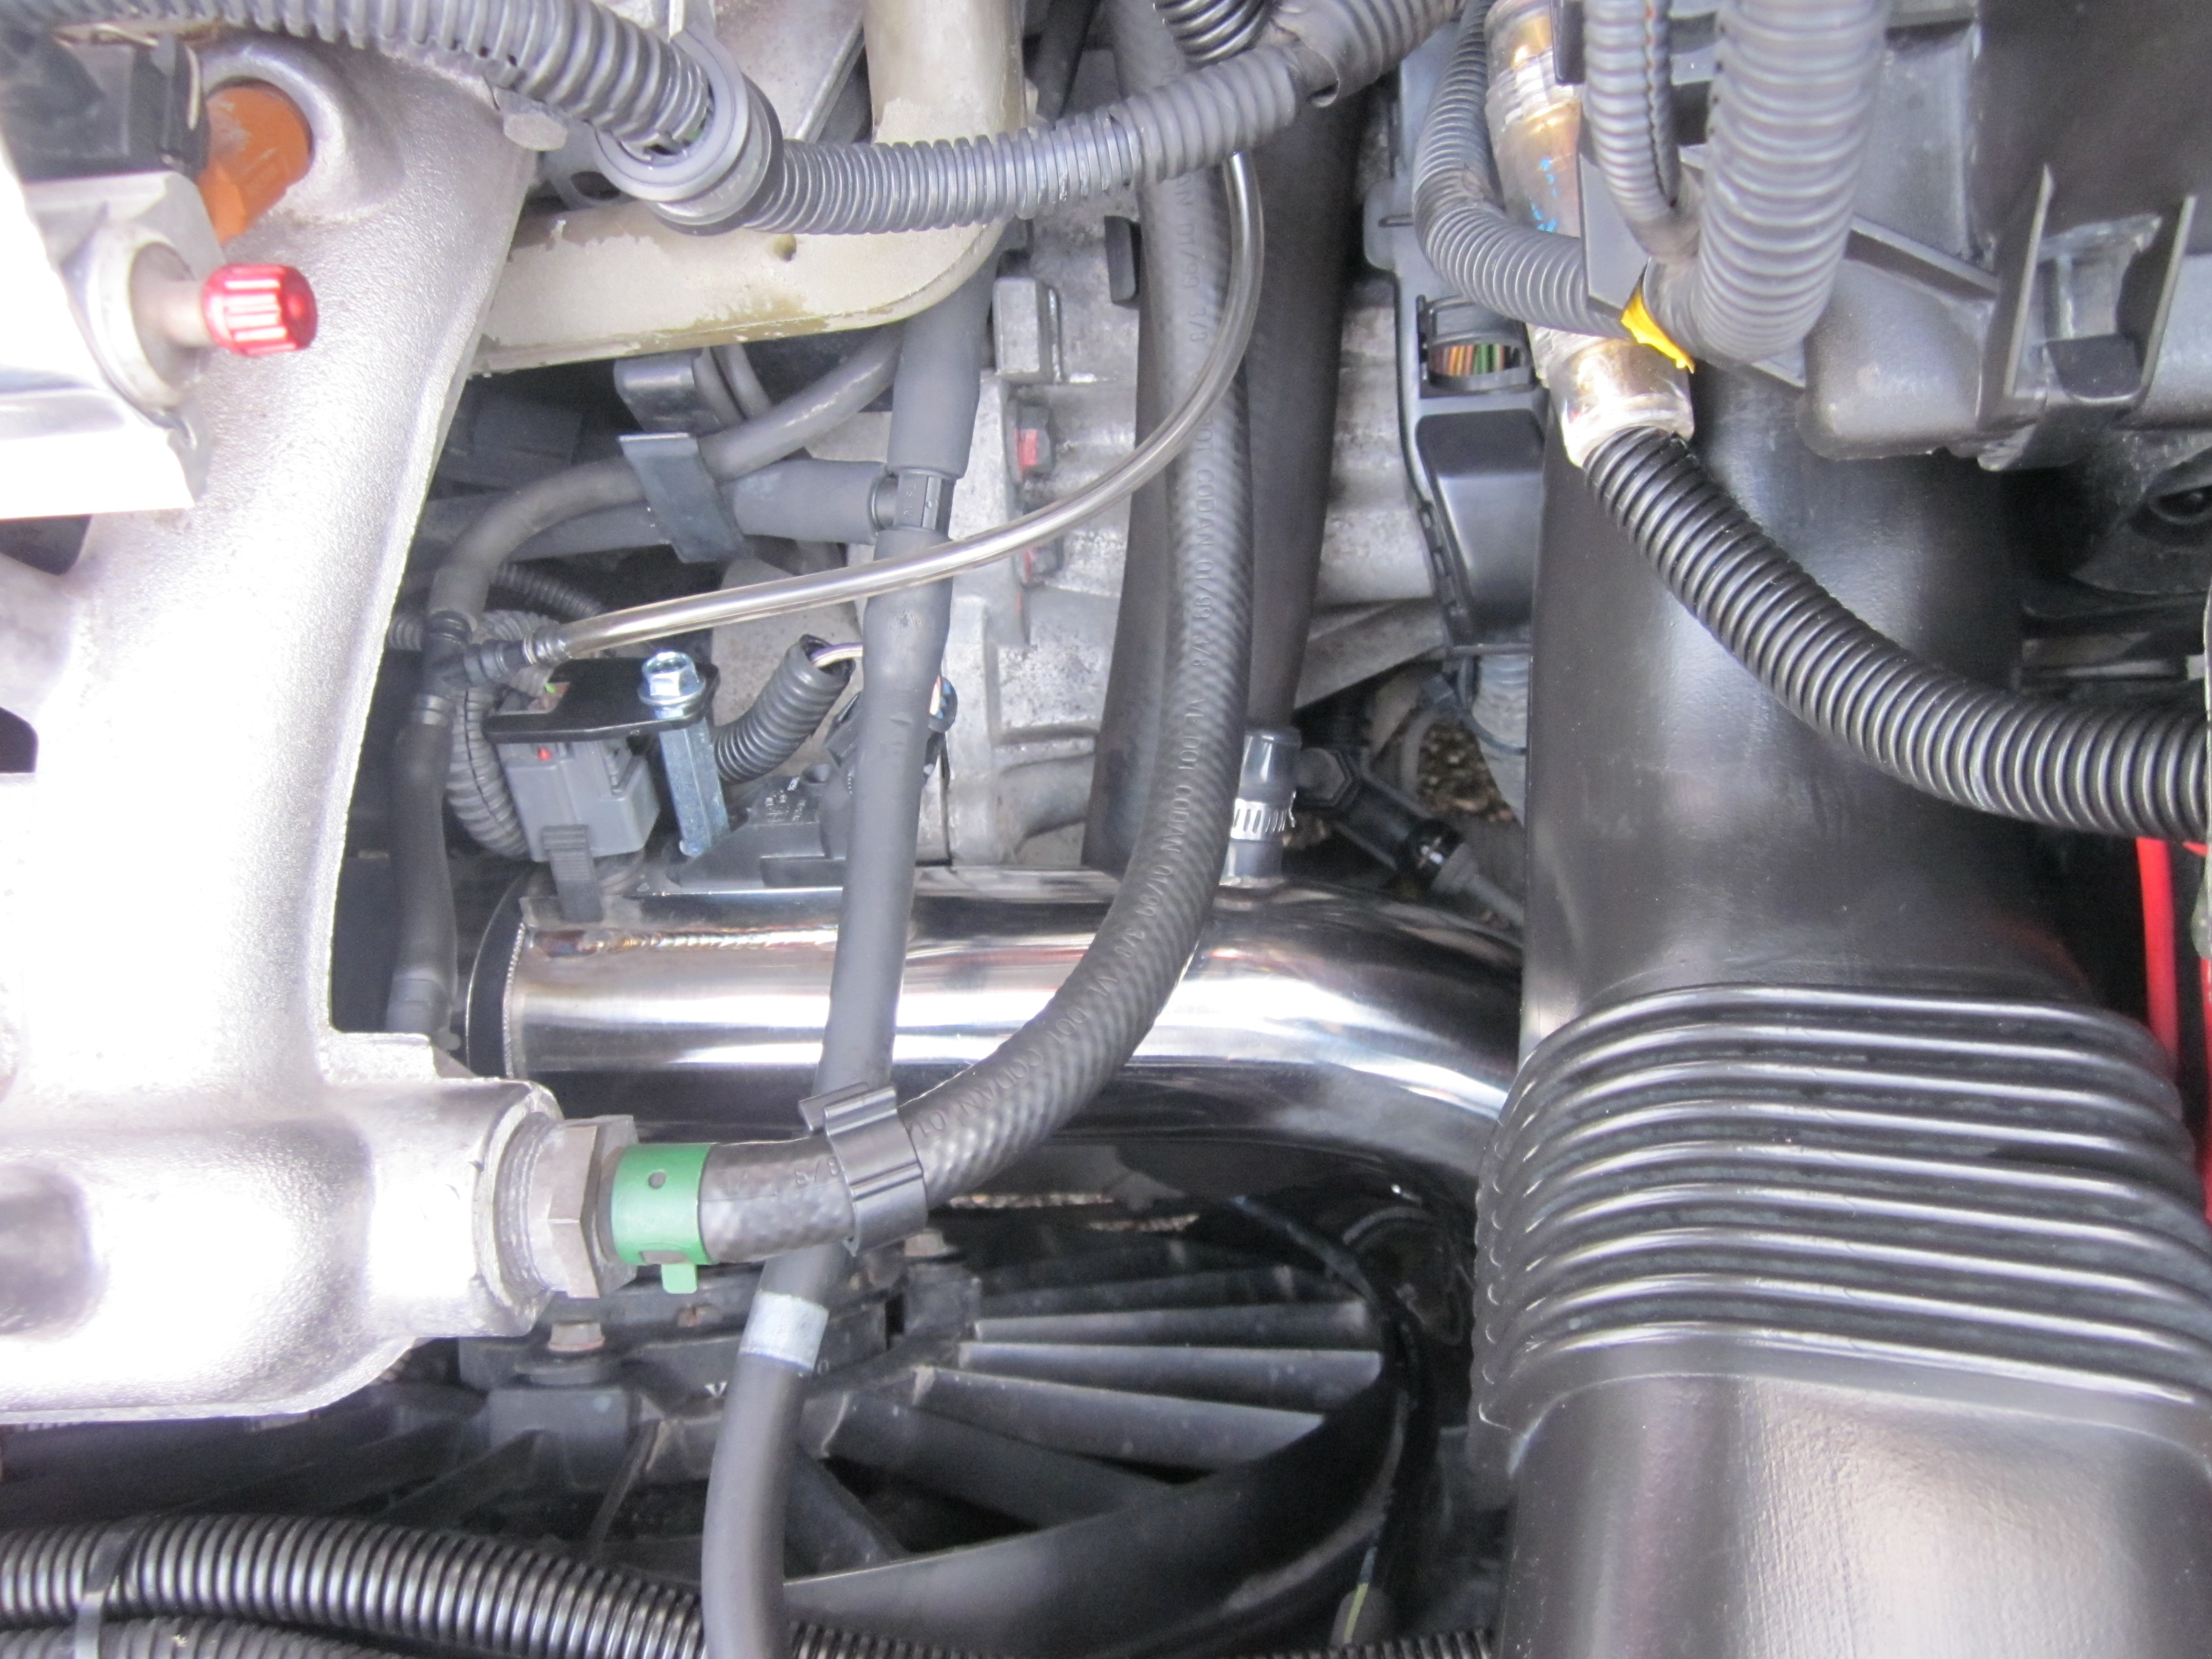 Volvo Svc70 Turbo Pressure Pipes Black Hoses S70 V70 C70 199 Color T By Wiring Diagram 1998